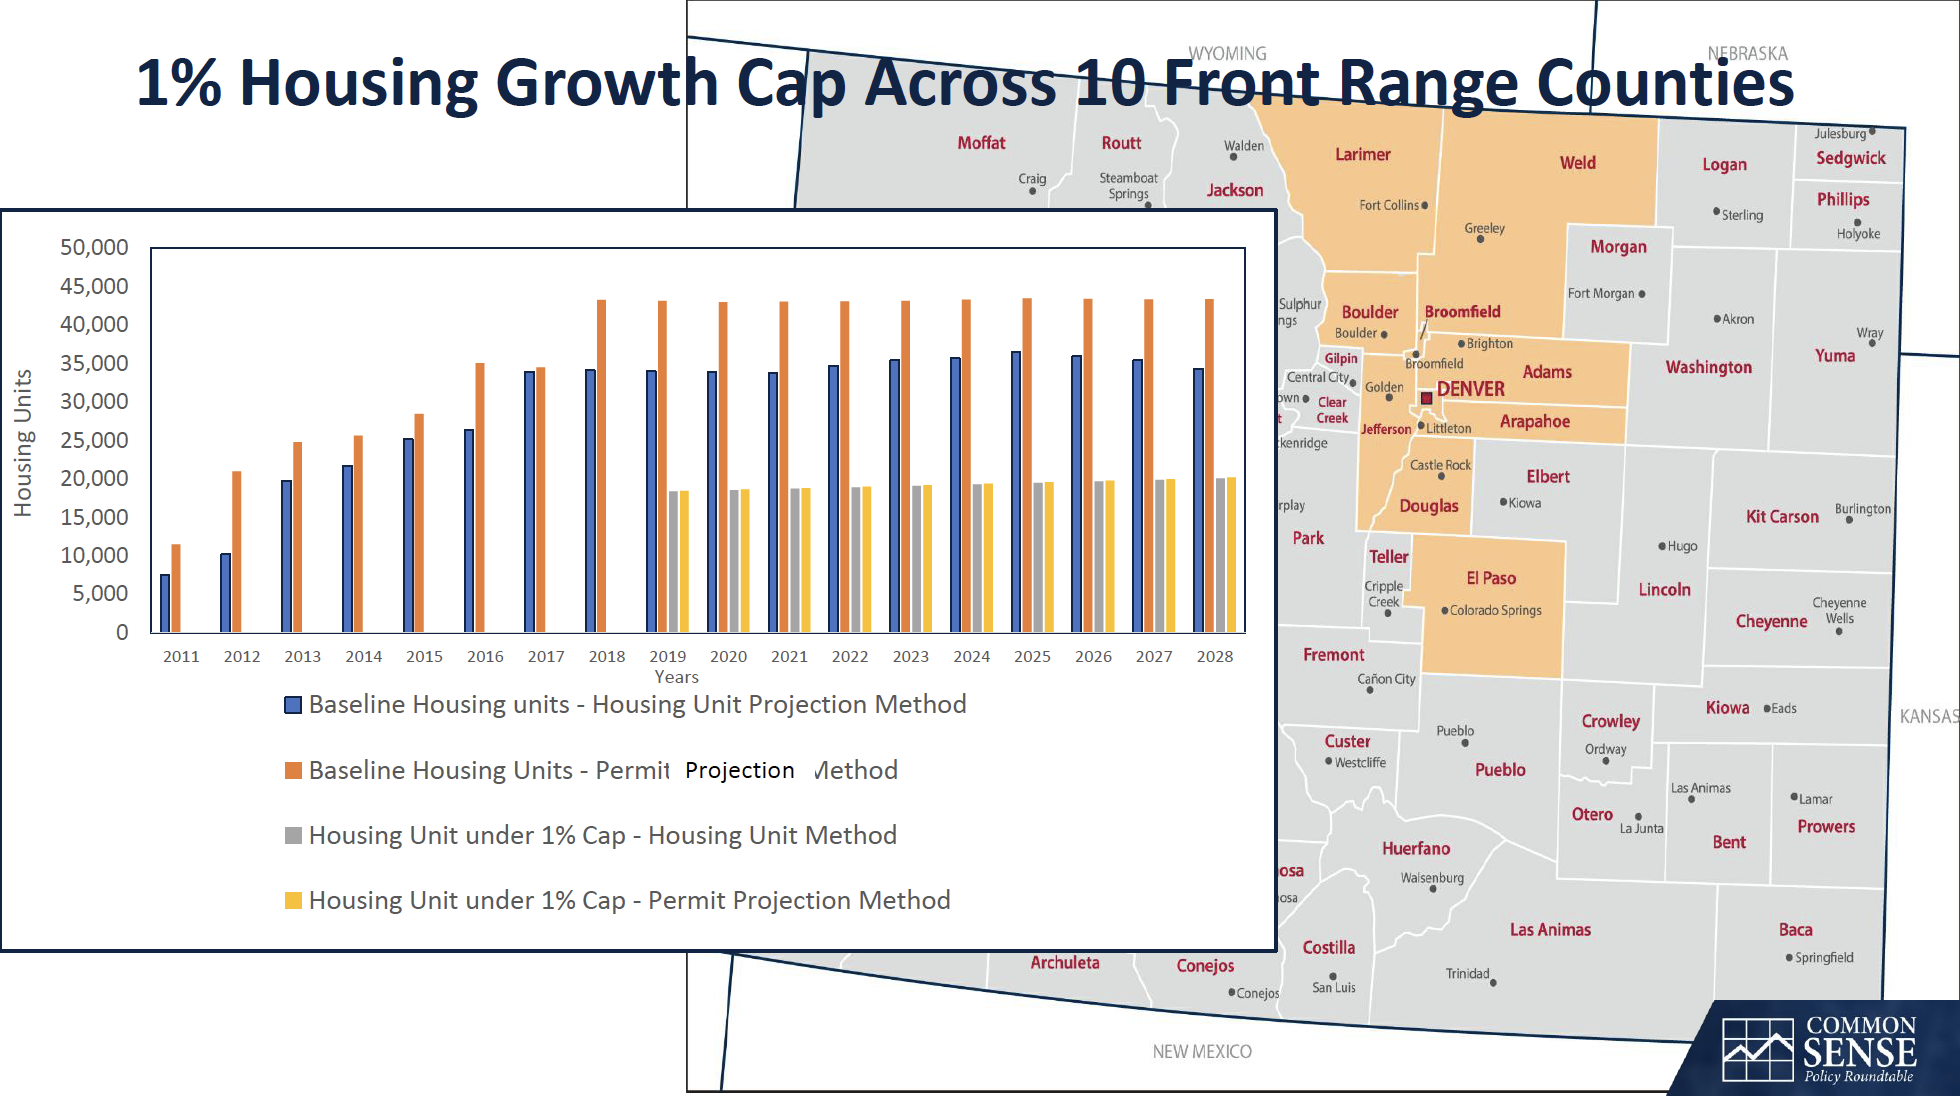 1% Housing Growth Cap across 10 Front Range Counties